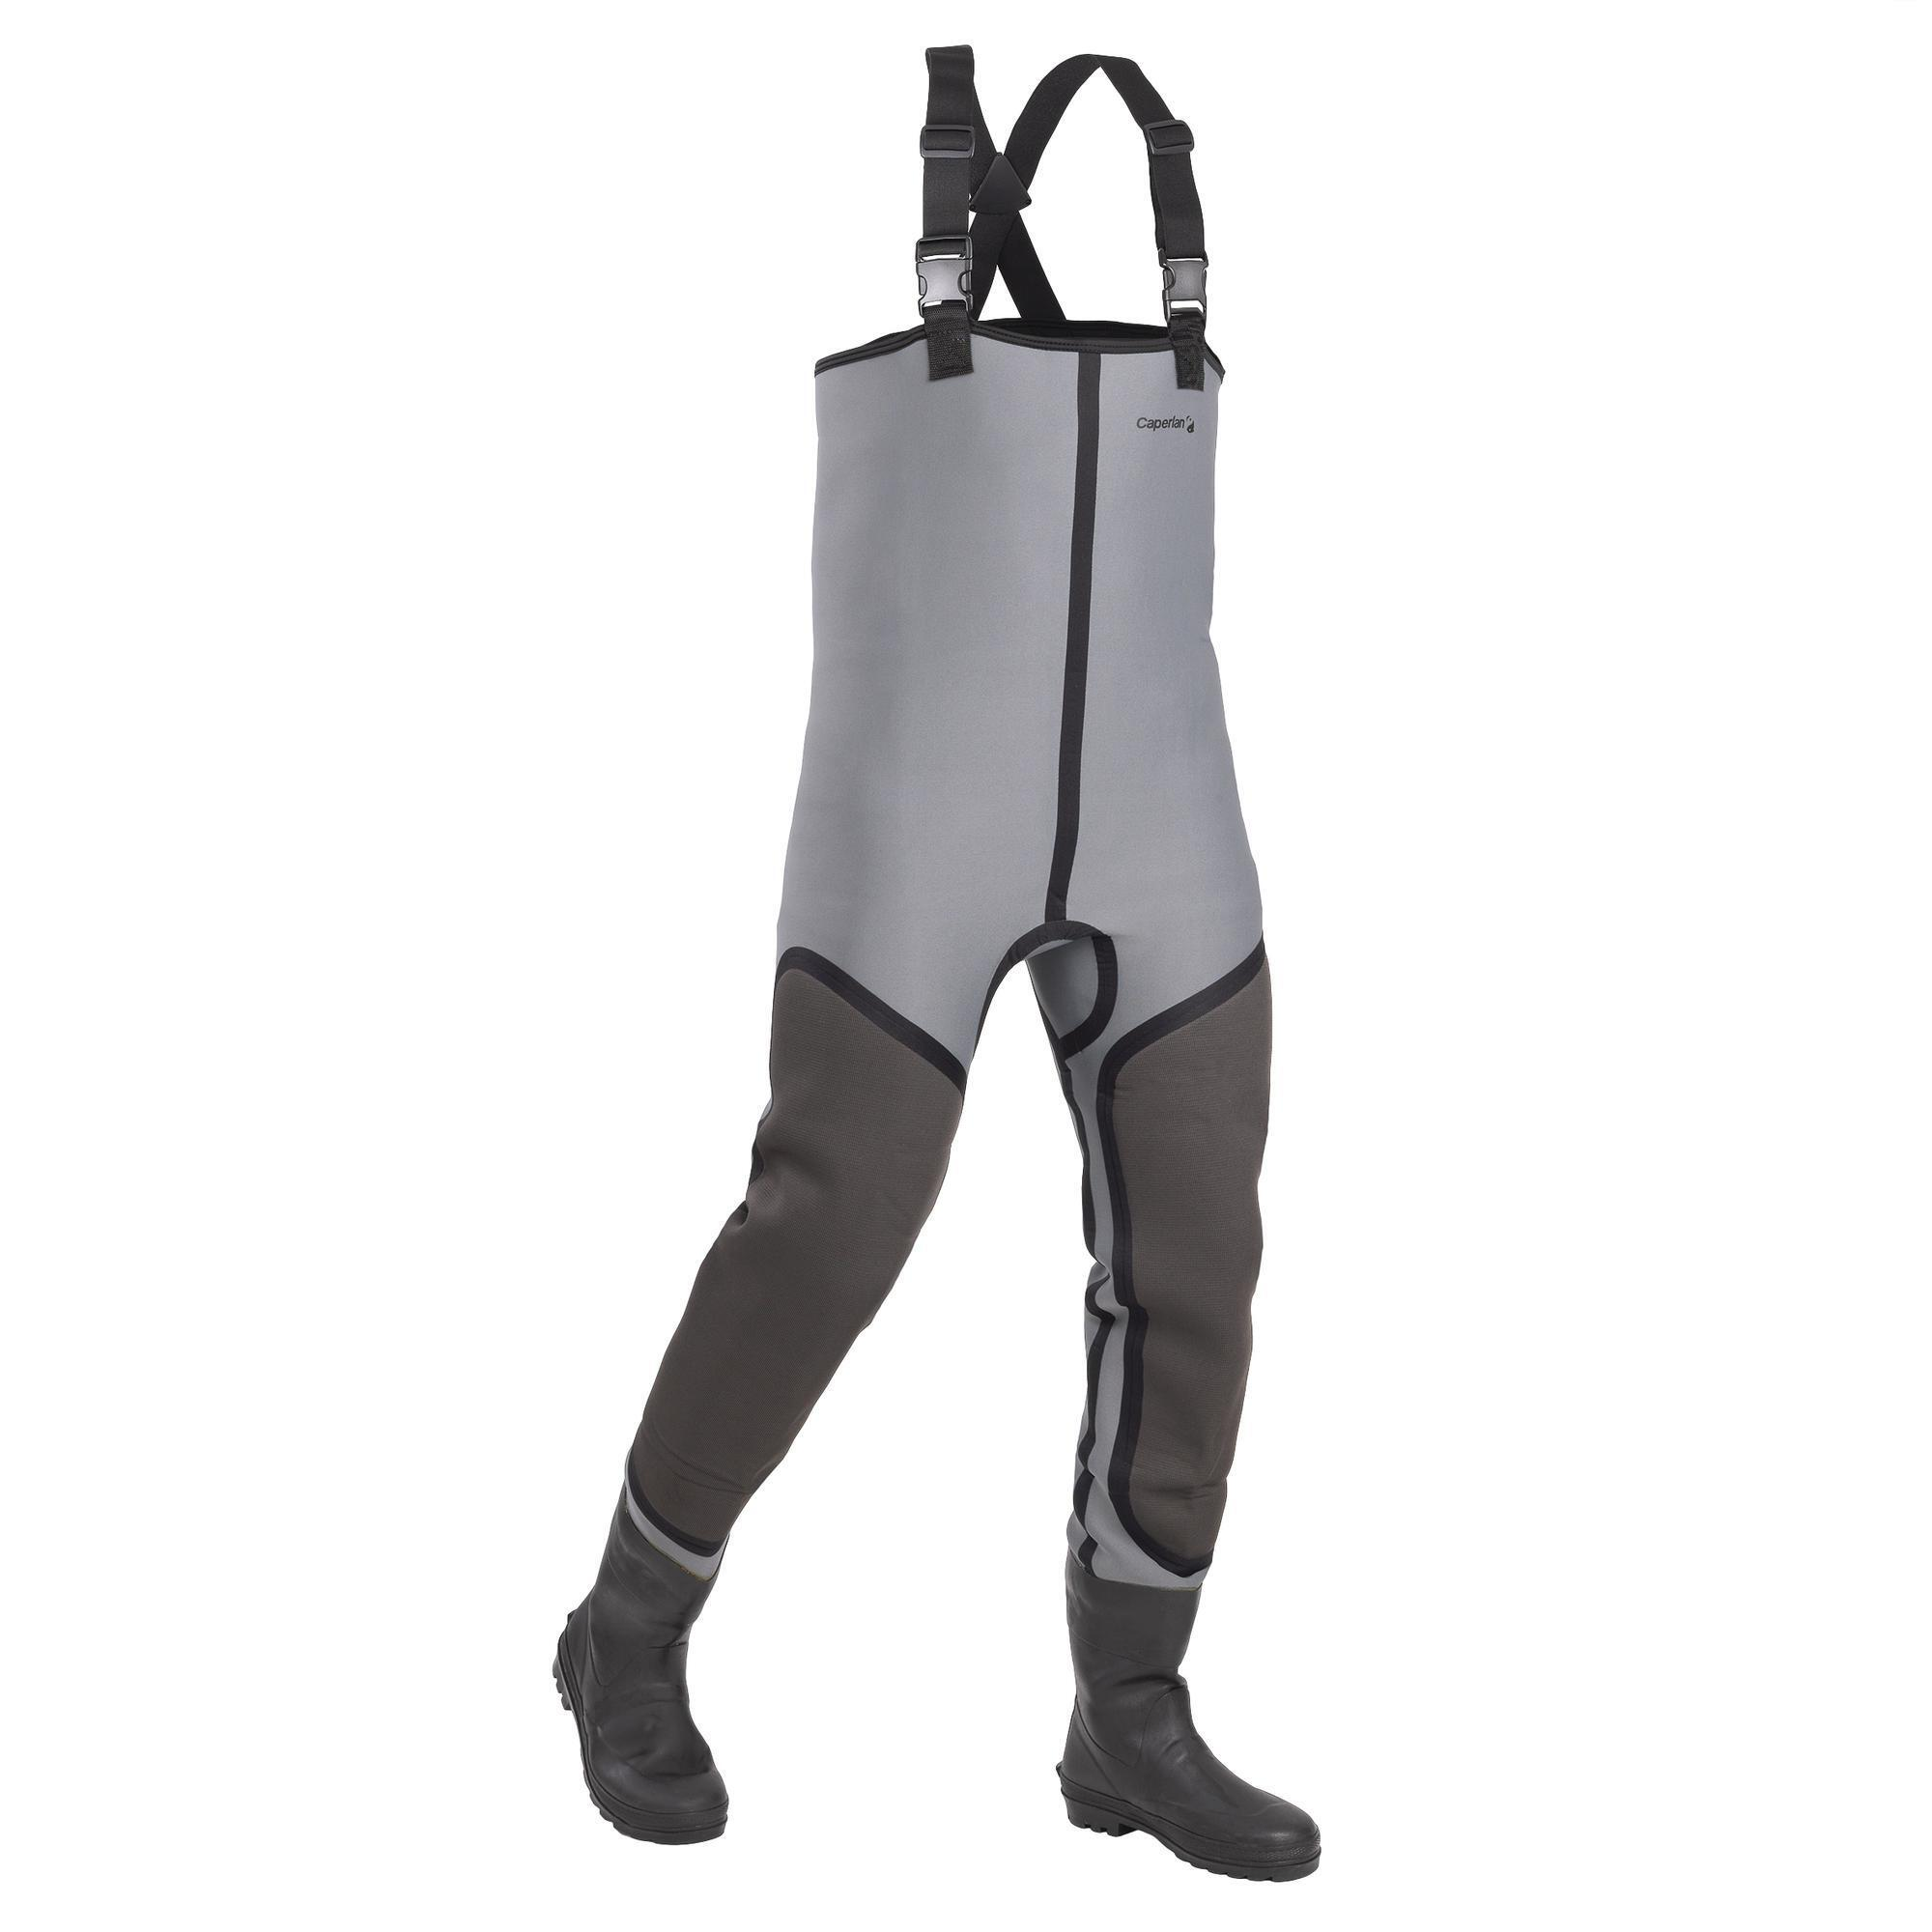 3MM THERMO FISHING WADERS